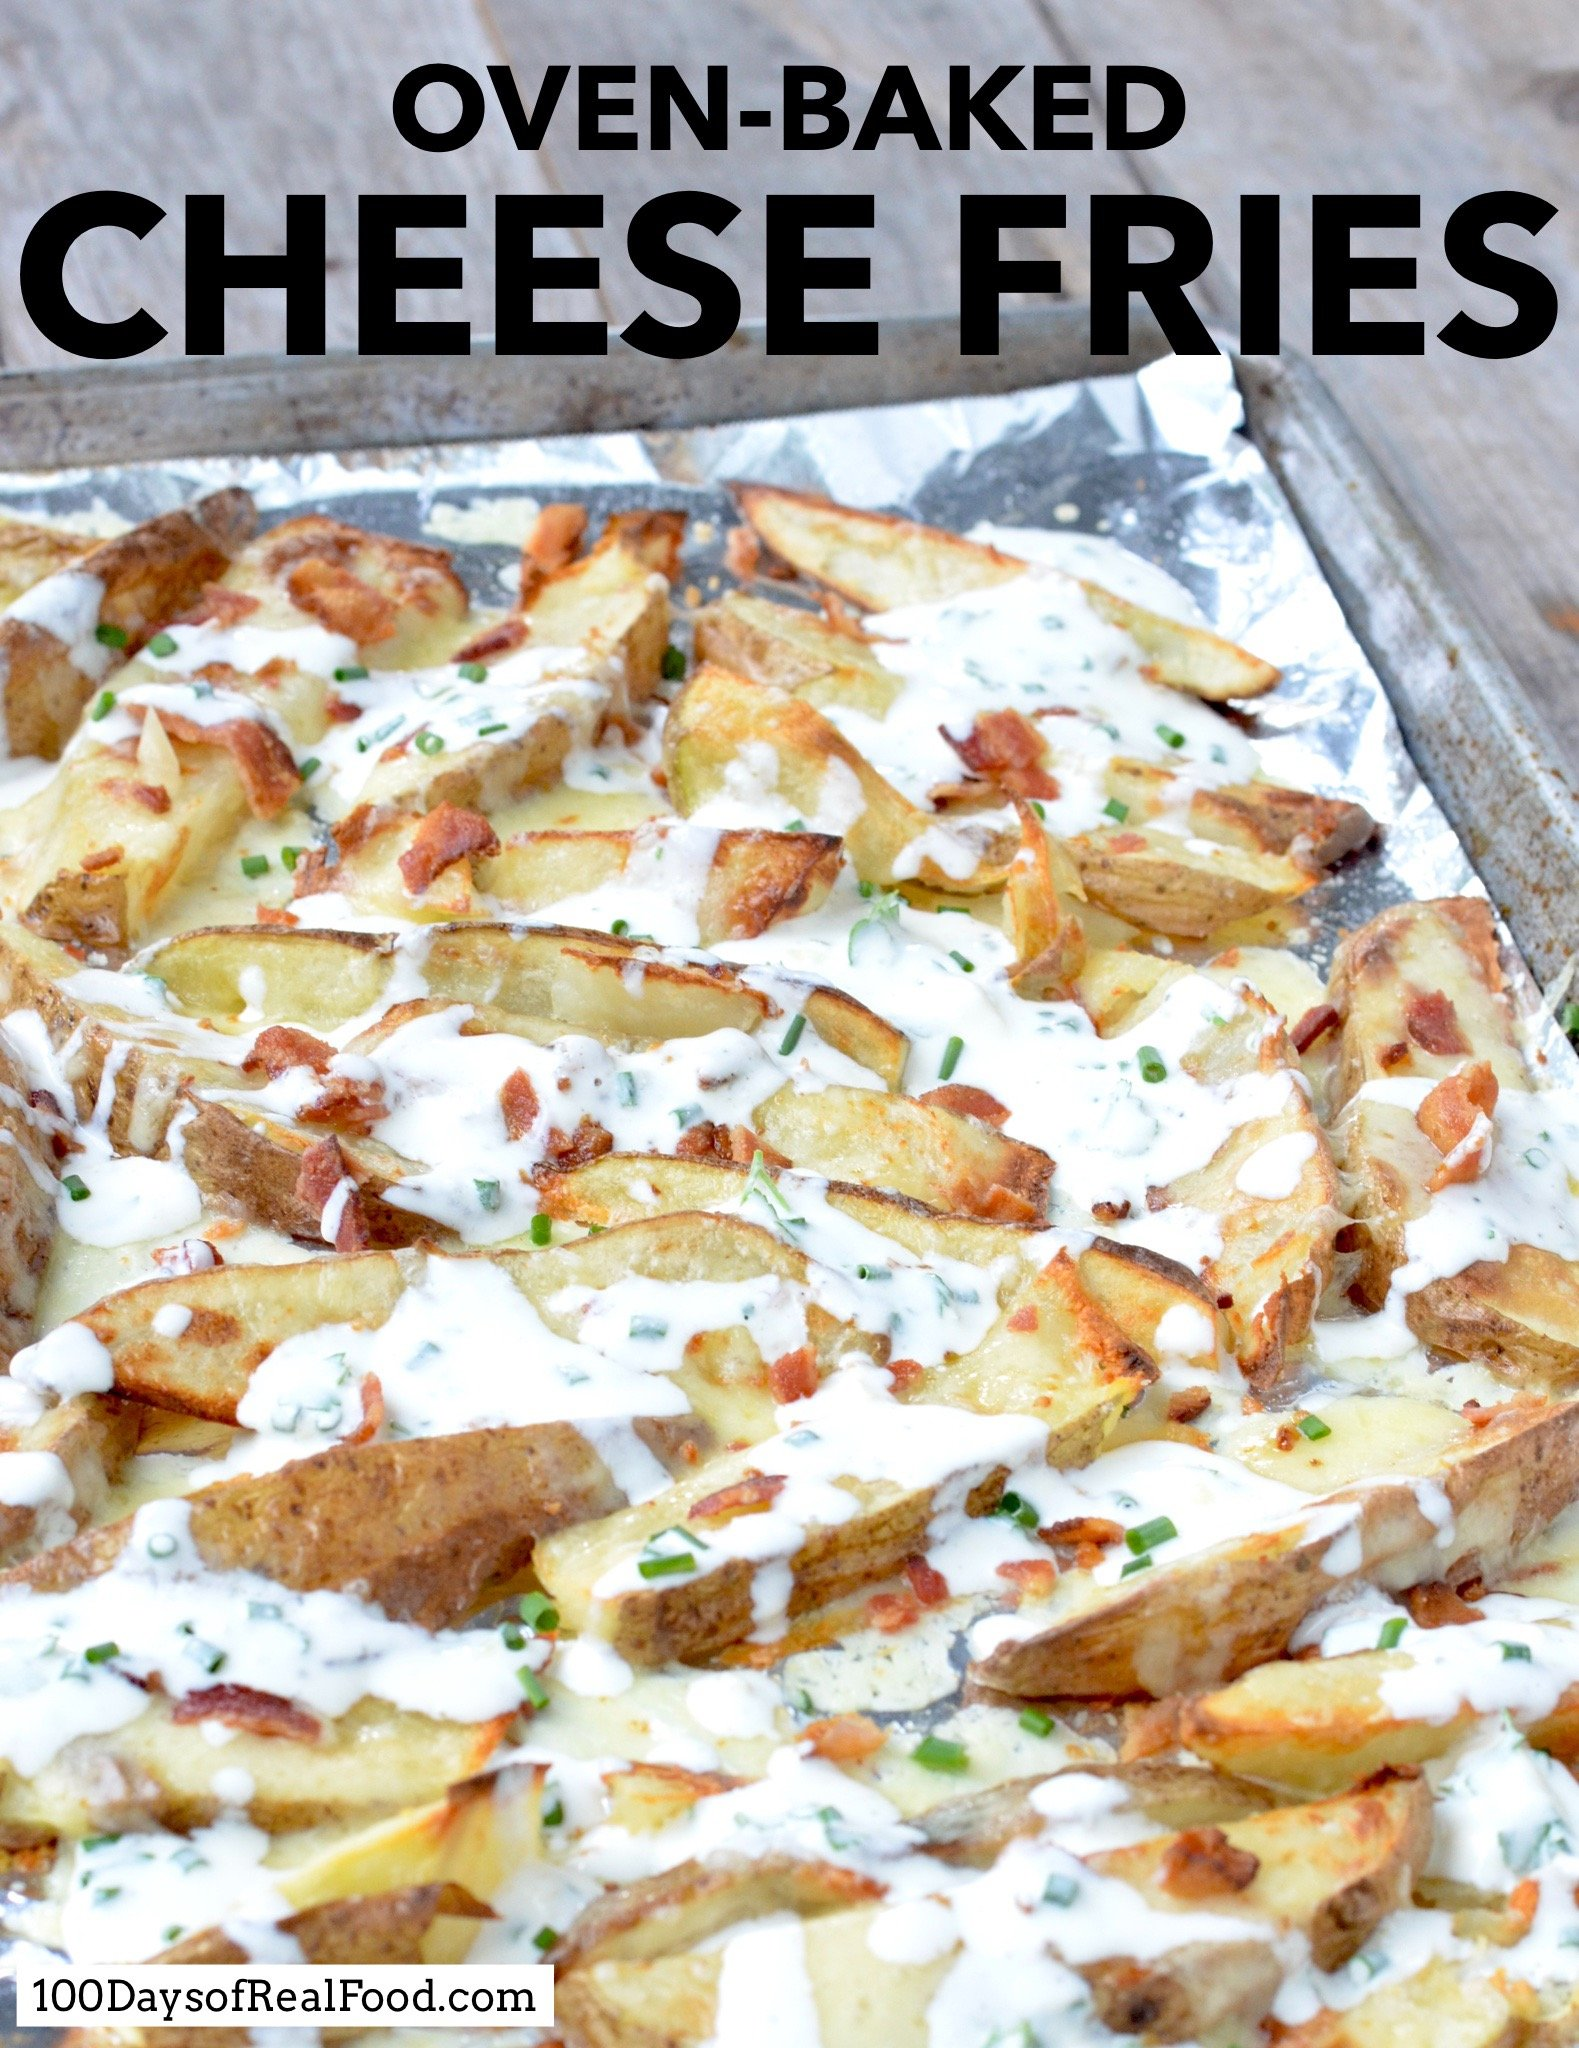 Oven-Baked Cheese Fries on 100 Days of Real Food